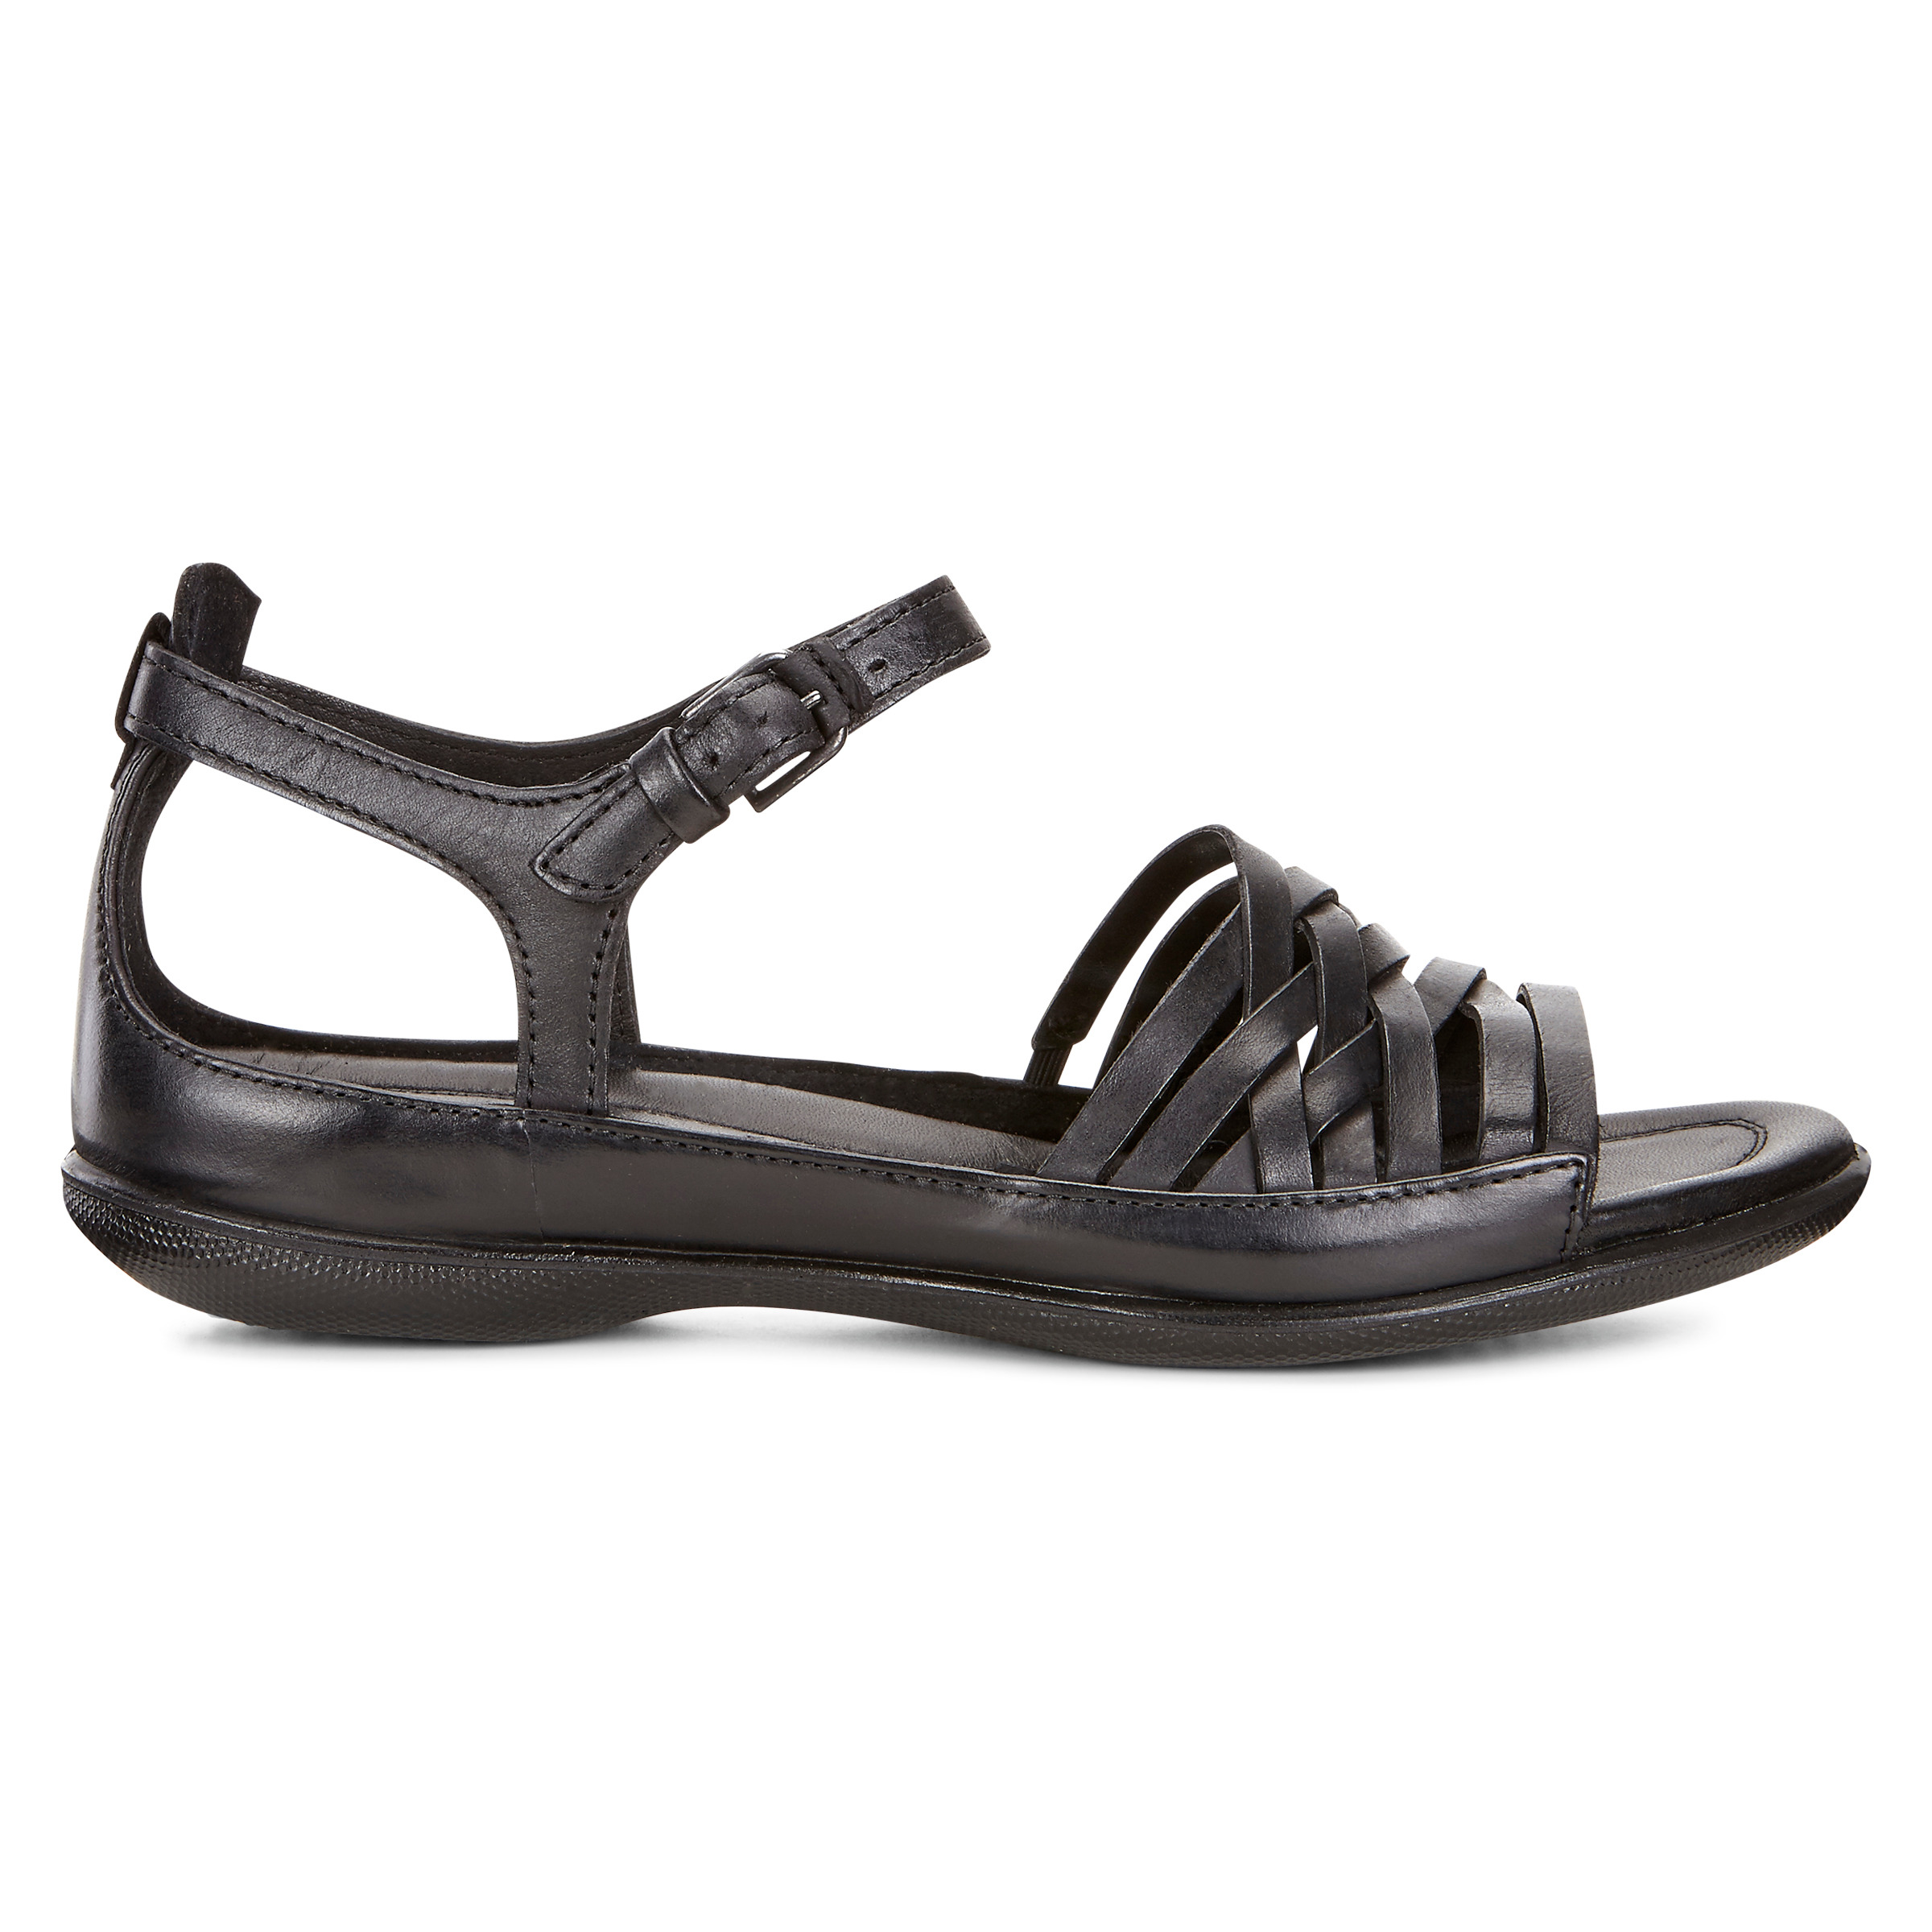 ECCO Flash Lattice Sandal Size 10-10.5 Black